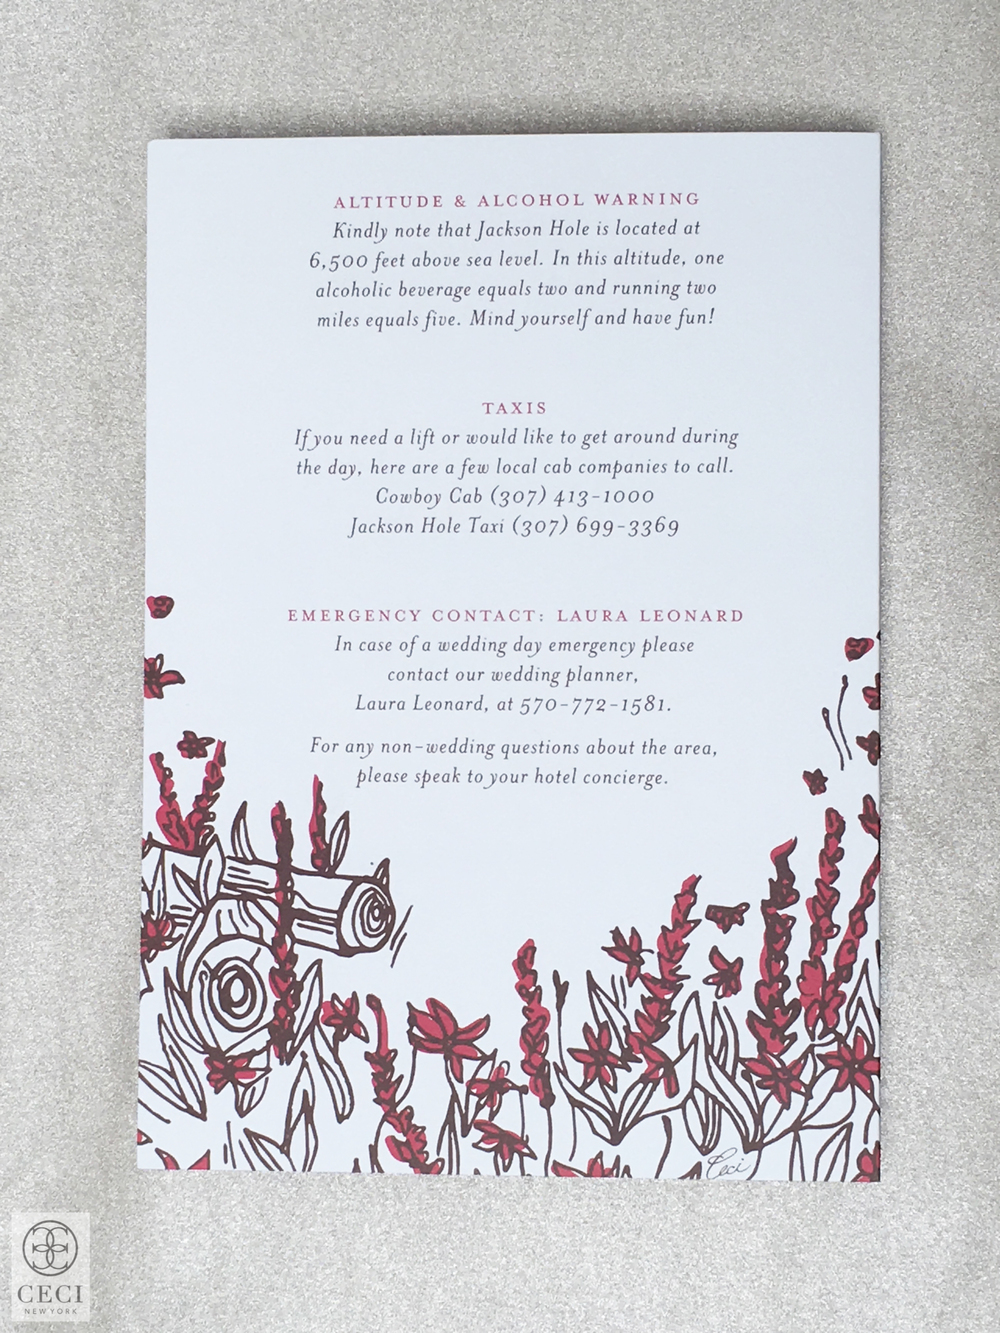 Ceci_New_York_Lyndsey_Hamilton_Events_Invitations_Wedding_Amangani_Elegance_Gold_Foil_Letterpress_Classic_Stamping_Custom_Couture_Personalized-18.jpg